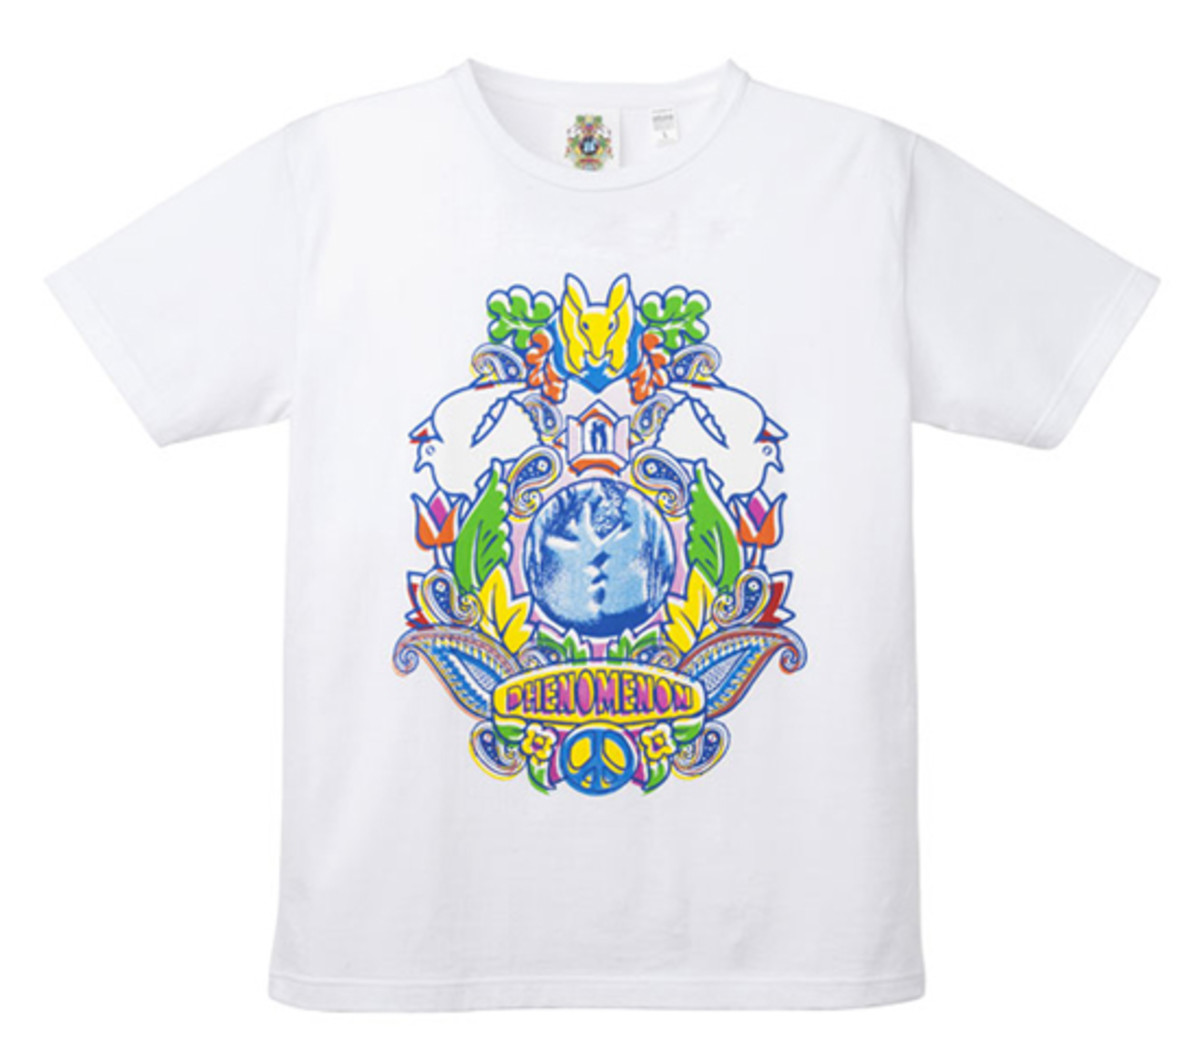 acid-girl-t-shirt-white